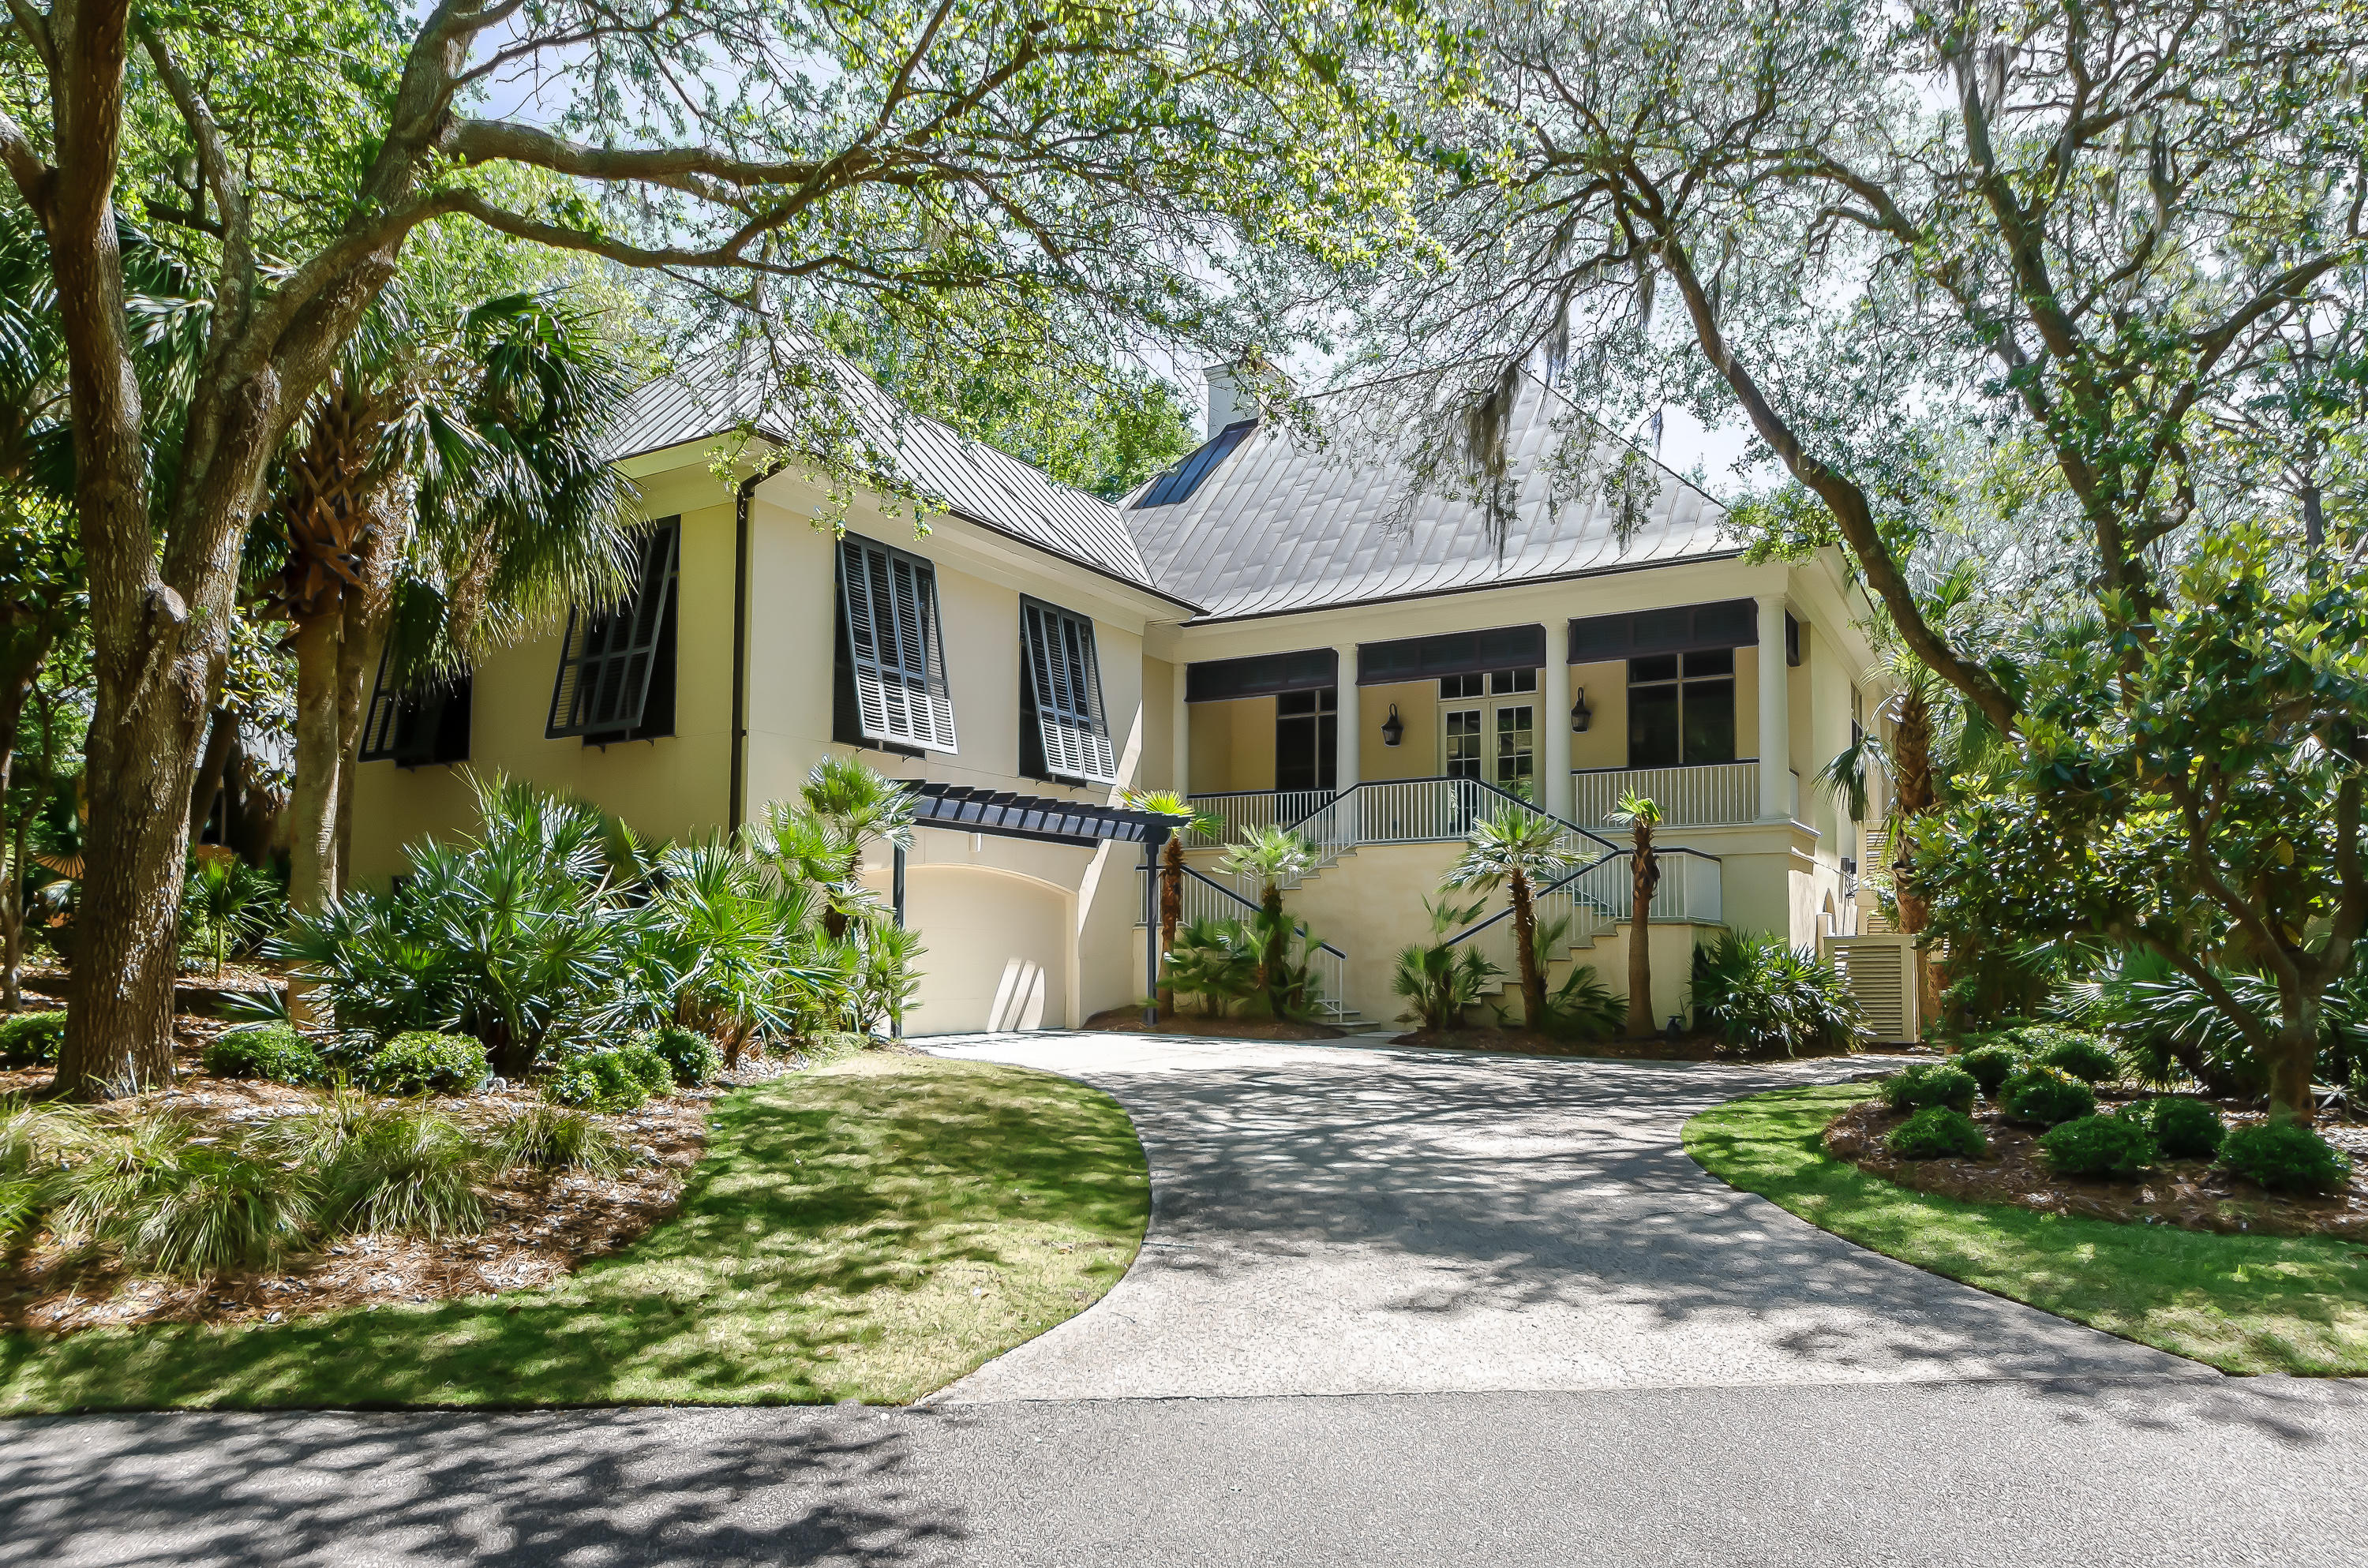 Photo of 411 Ocean Oaks Ct, Kiawah Island, SC 29455